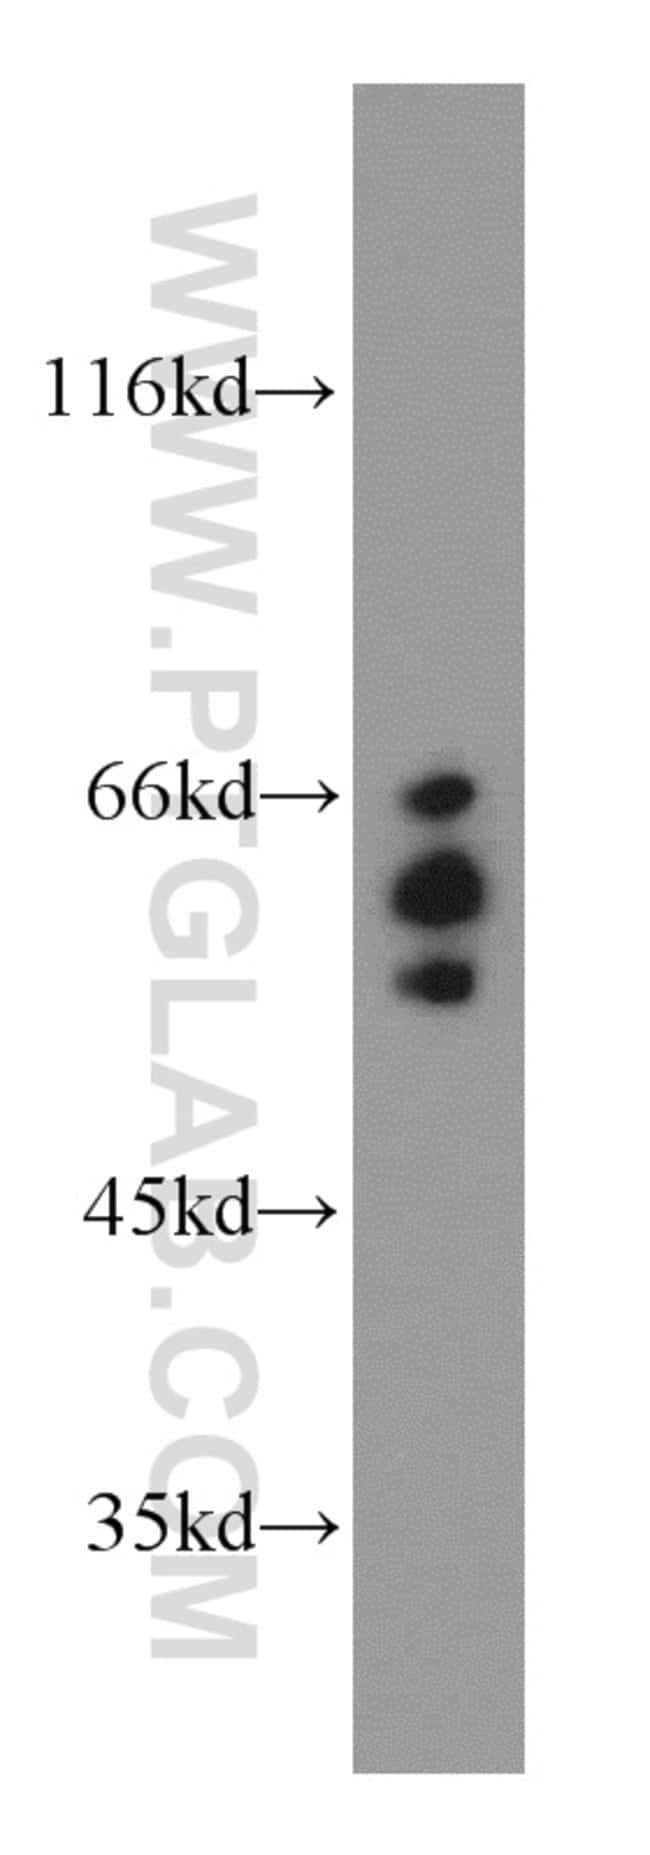 ARFGAP3 Rabbit anti-Human, Mouse, Rat, Polyclonal, Proteintech 150 μL; Unconjugated voir les résultats